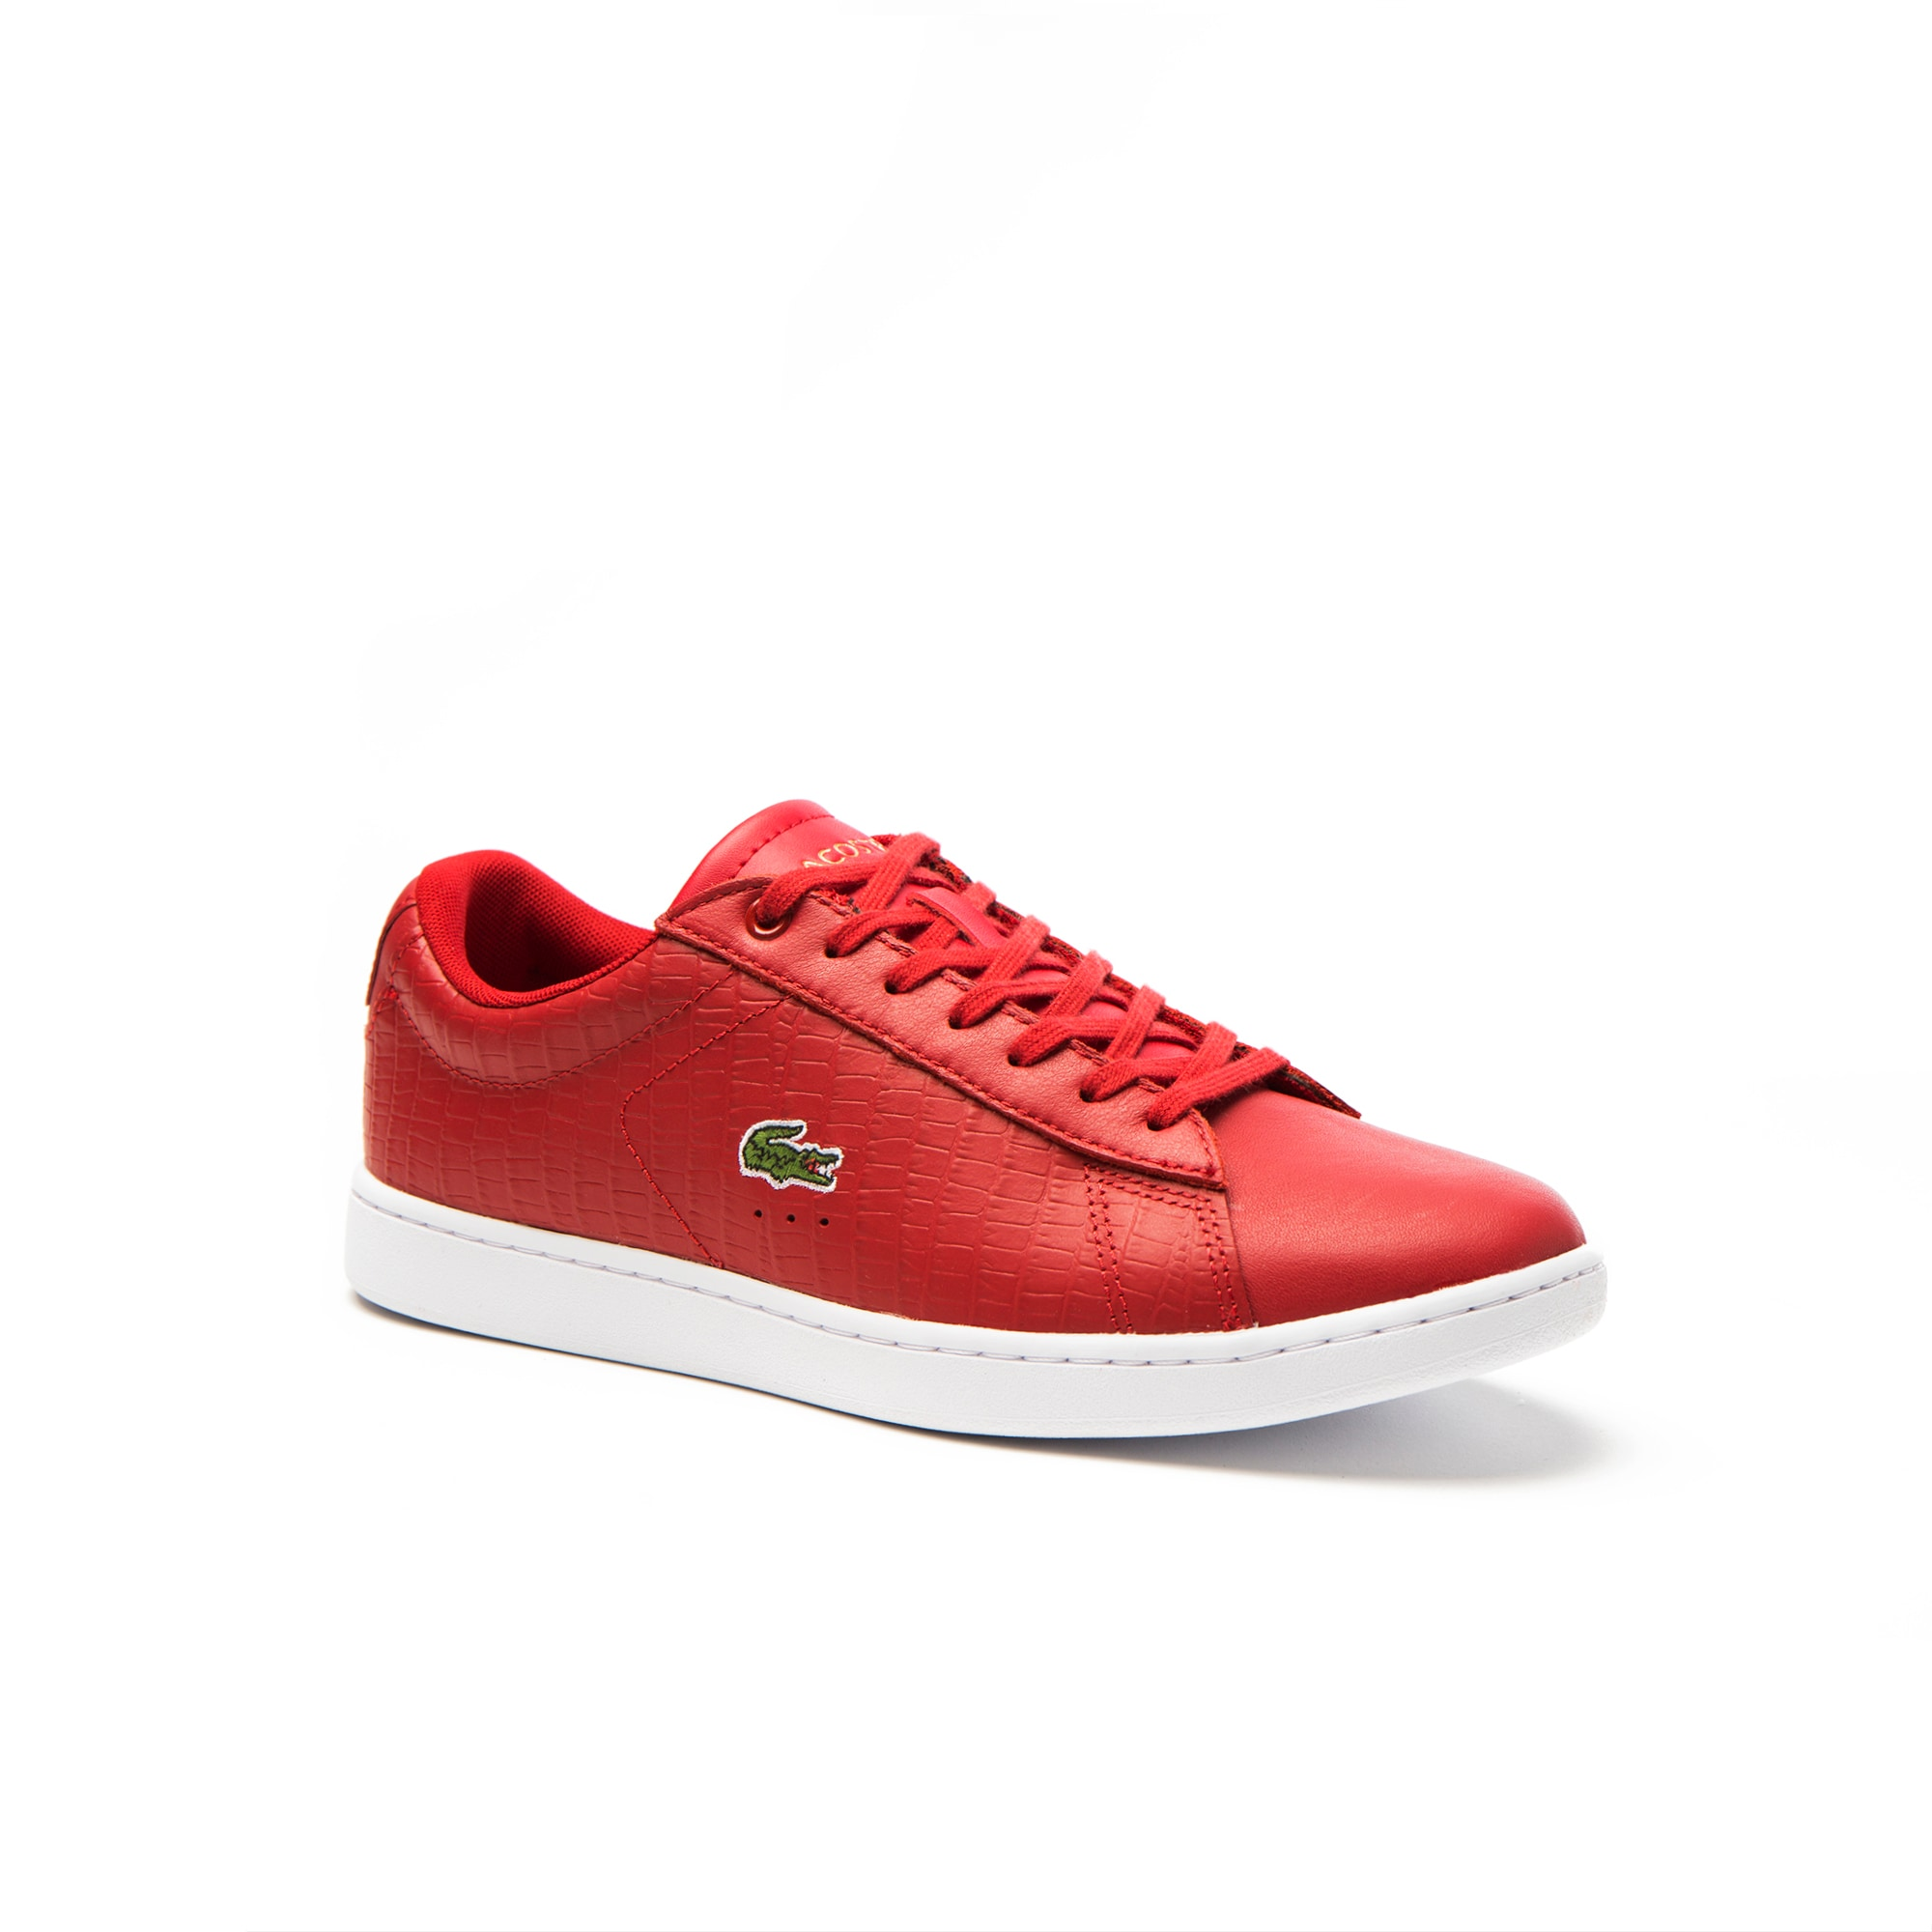 Women's Red Carnaby Sneakers